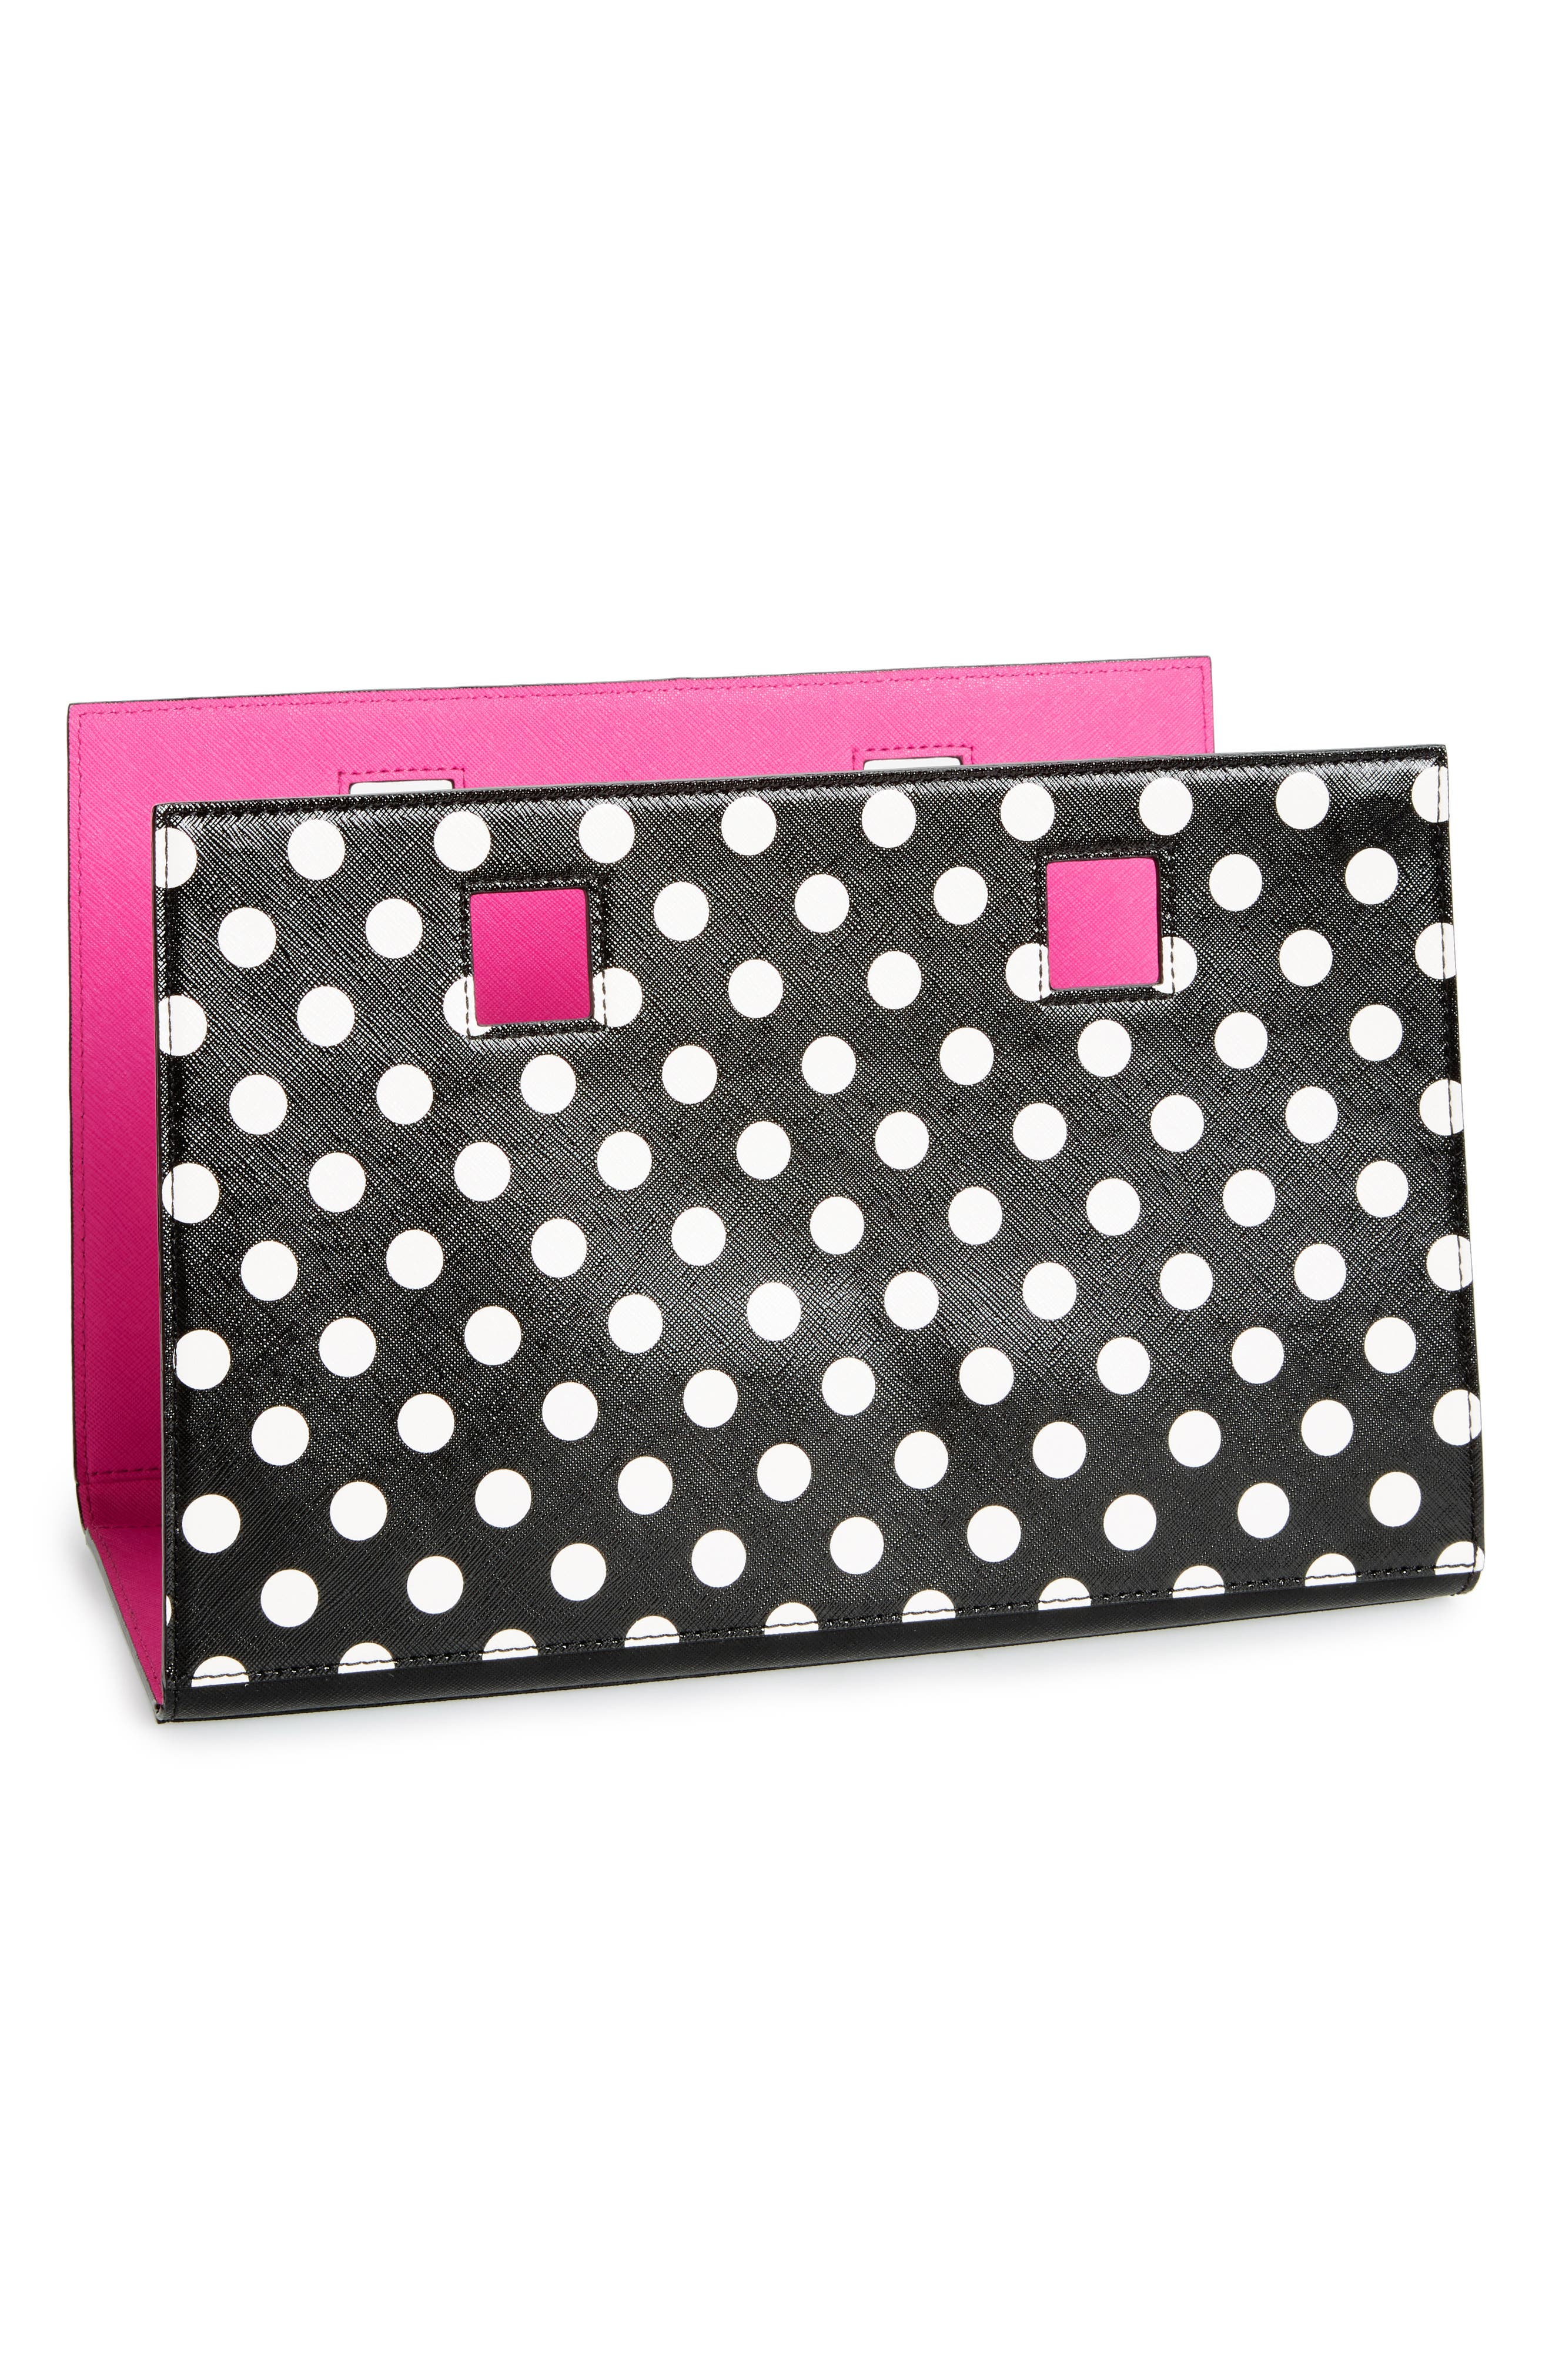 Alternate Image 1 Selected - kate spade new york make it mine reversible polka dot/solid leather snap-on accent flap